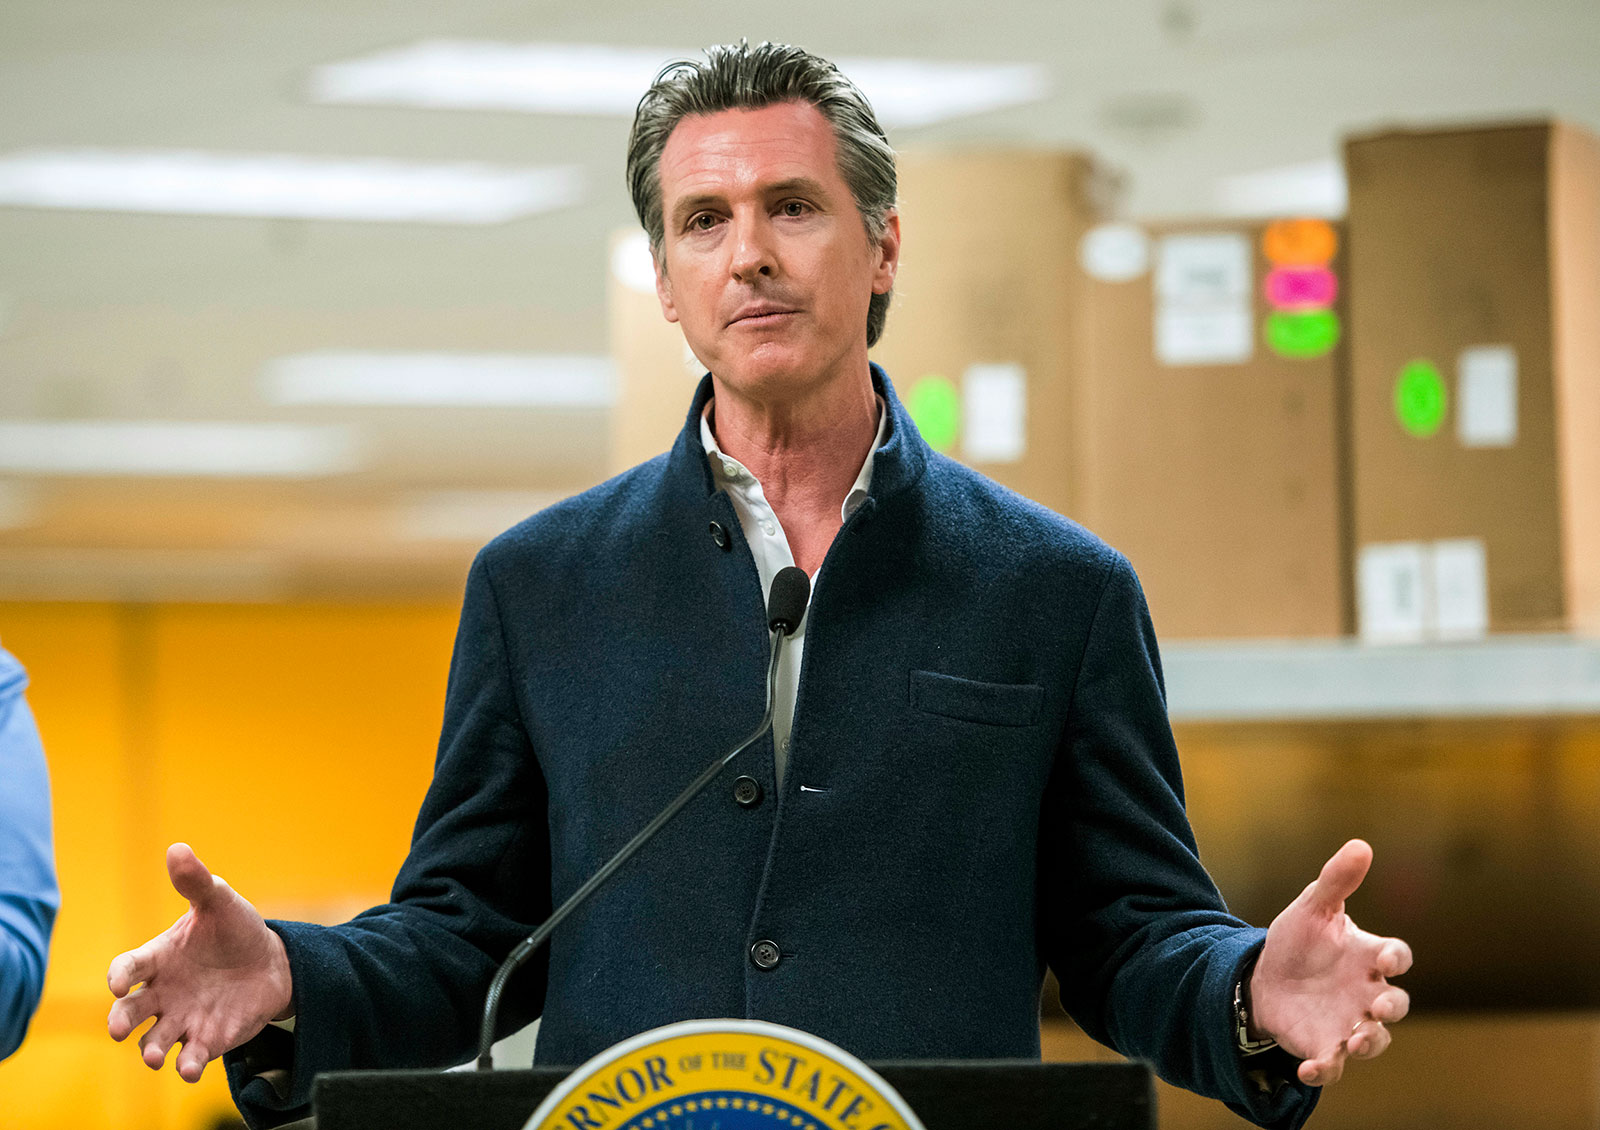 California Gov. Gavin Newsom speaks during a news conference at the Bloom Energy campus in Sunnyvale, California, on Saturday, March 28.